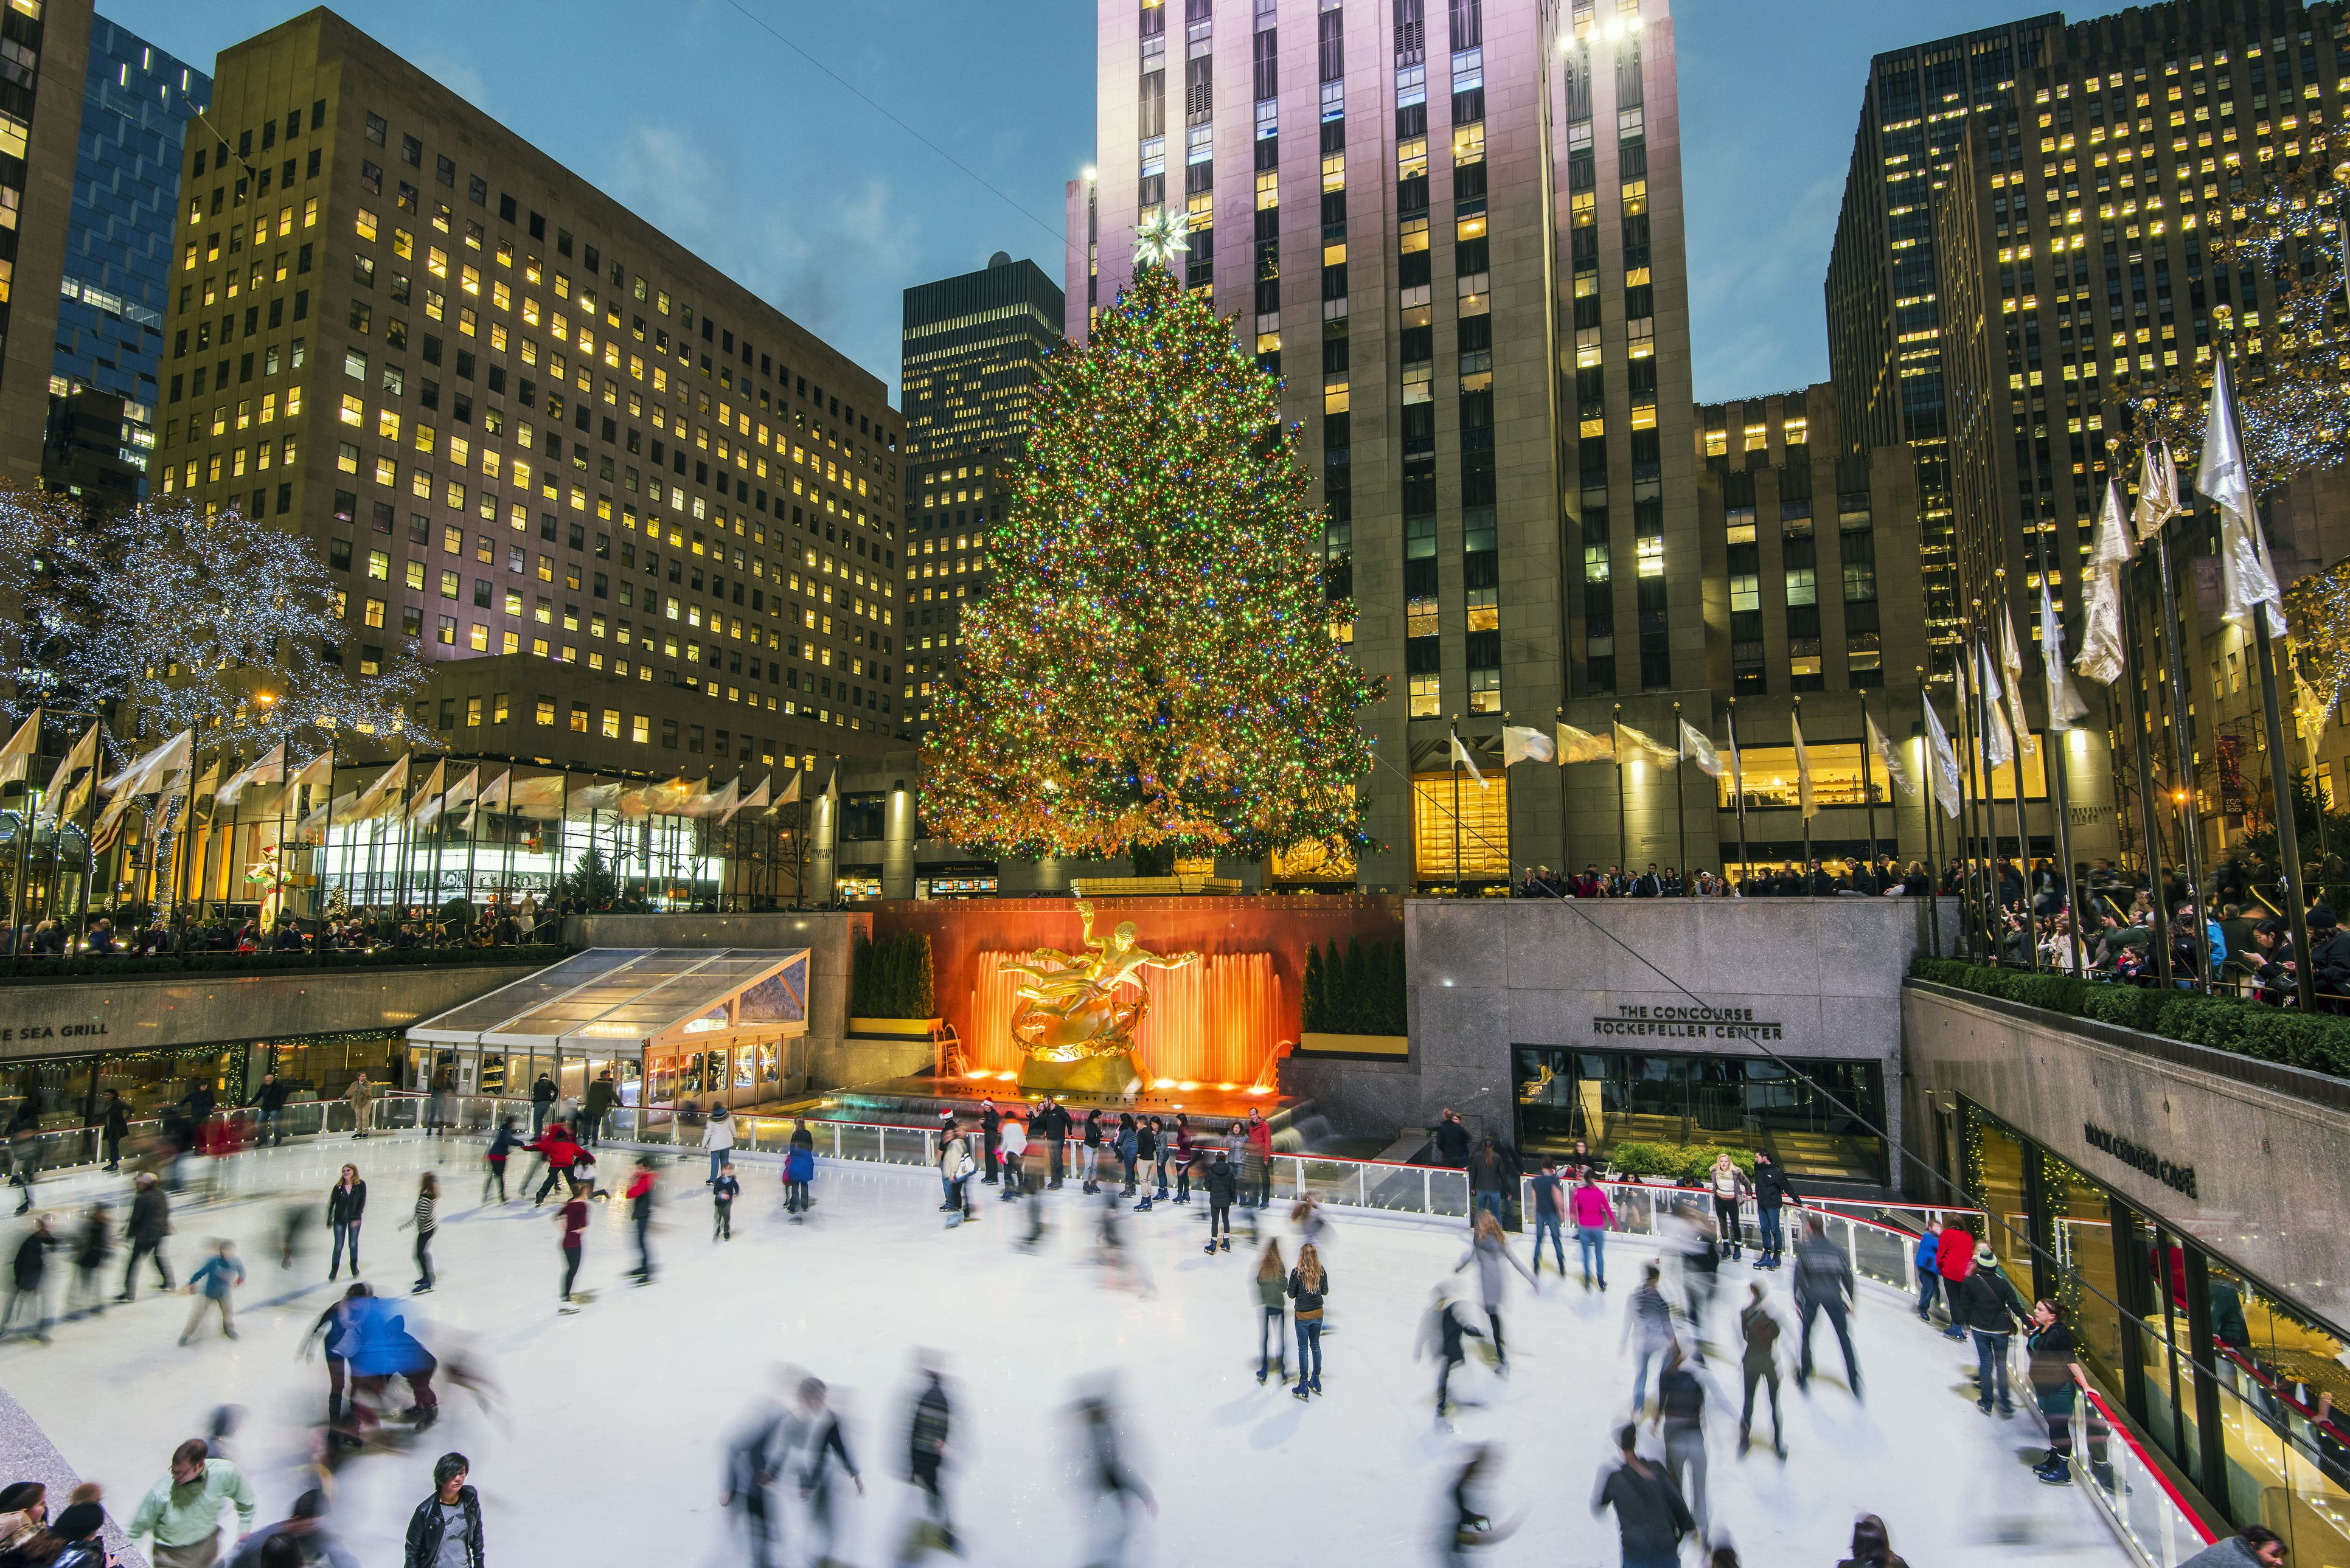 Top 10 Marriage Proposal Spots In NYC